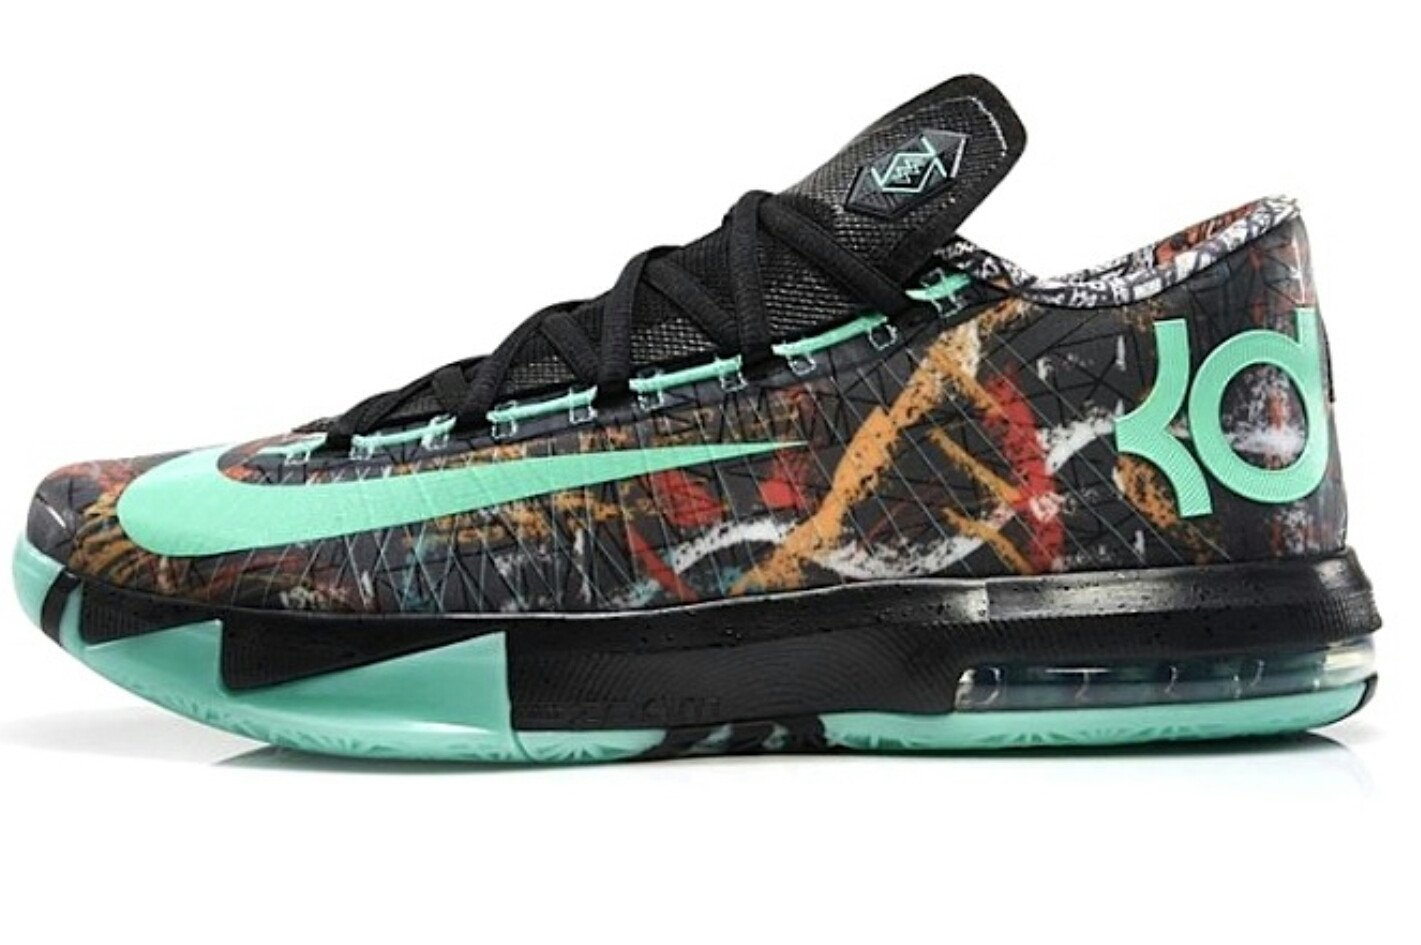 3963456ac40d KD 6 ASG SZ 14 LEFT in 2018